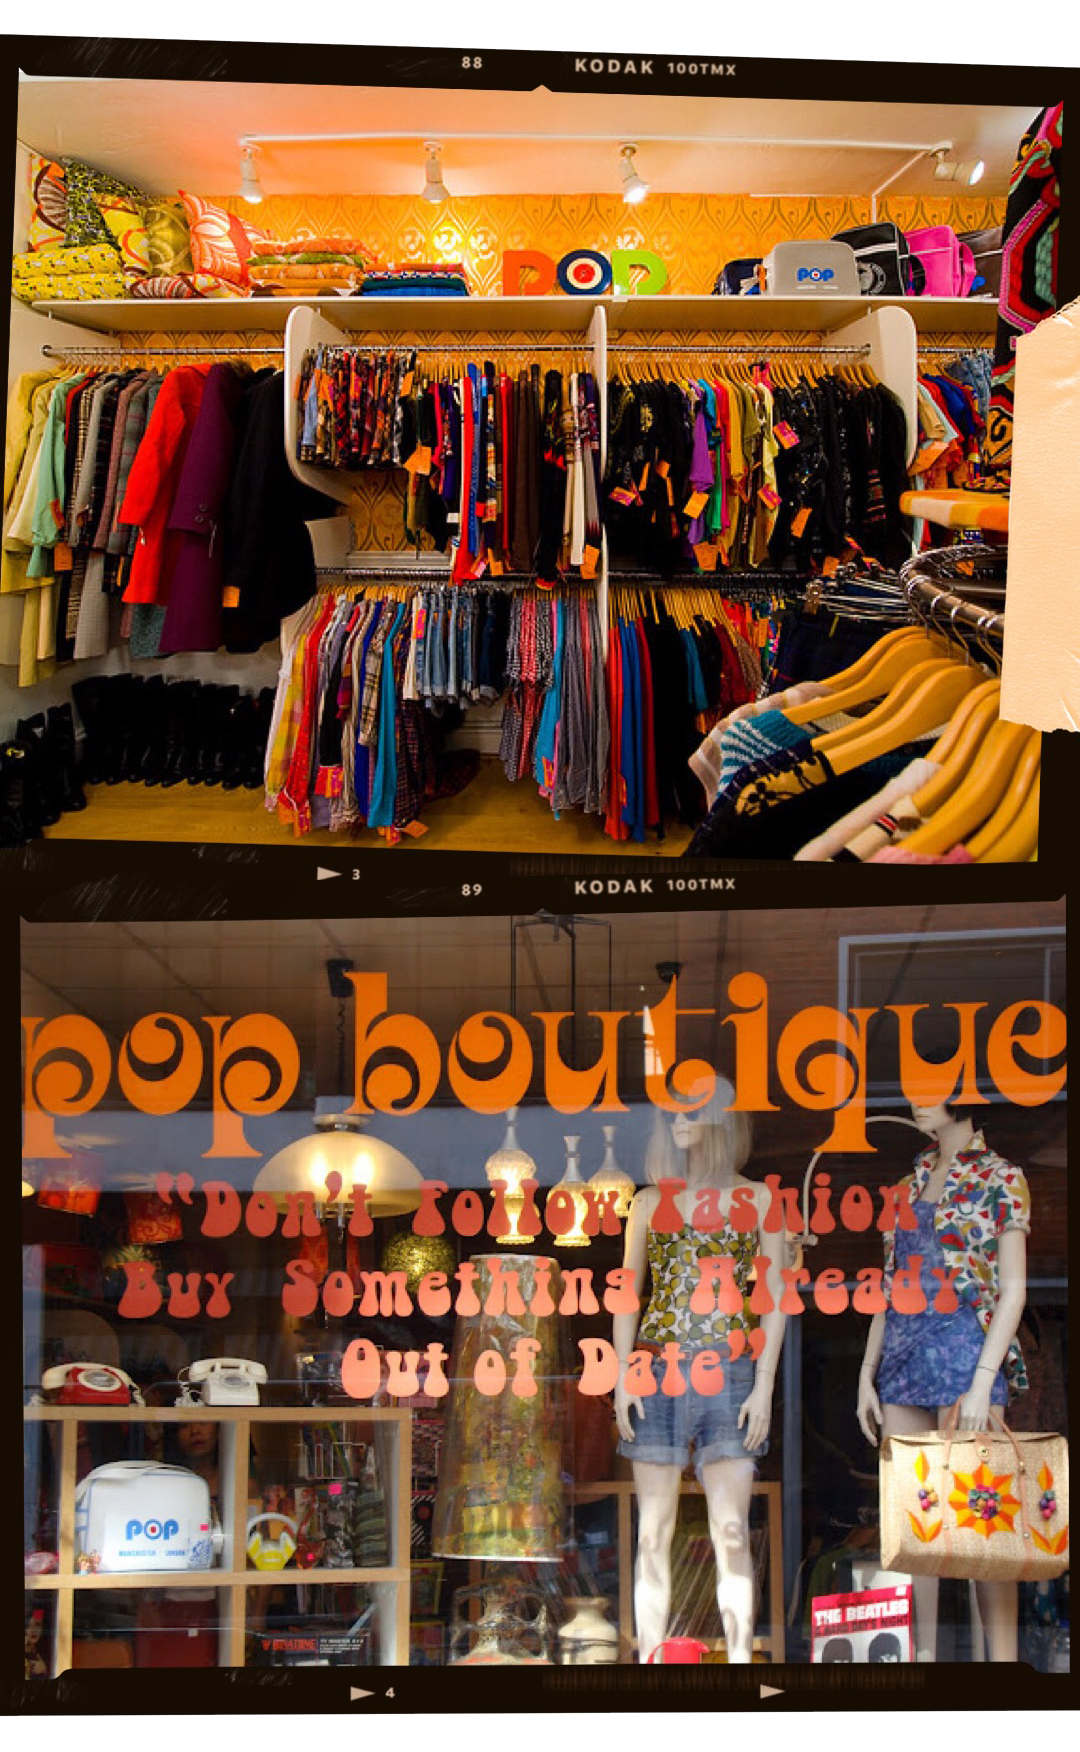 POP BOUTIQUE - We love Pop Boutique not only for its funky decor but also for the gorgeous selection of the 1960s to 1980's vintage pieces. If you're tired of only seeing 90's denim and neon windbreaker jackets in most of the London vintage shops, then Pop Boutique is a must-go definitely!Location:30 Short's Gardens, WC2H 9PX